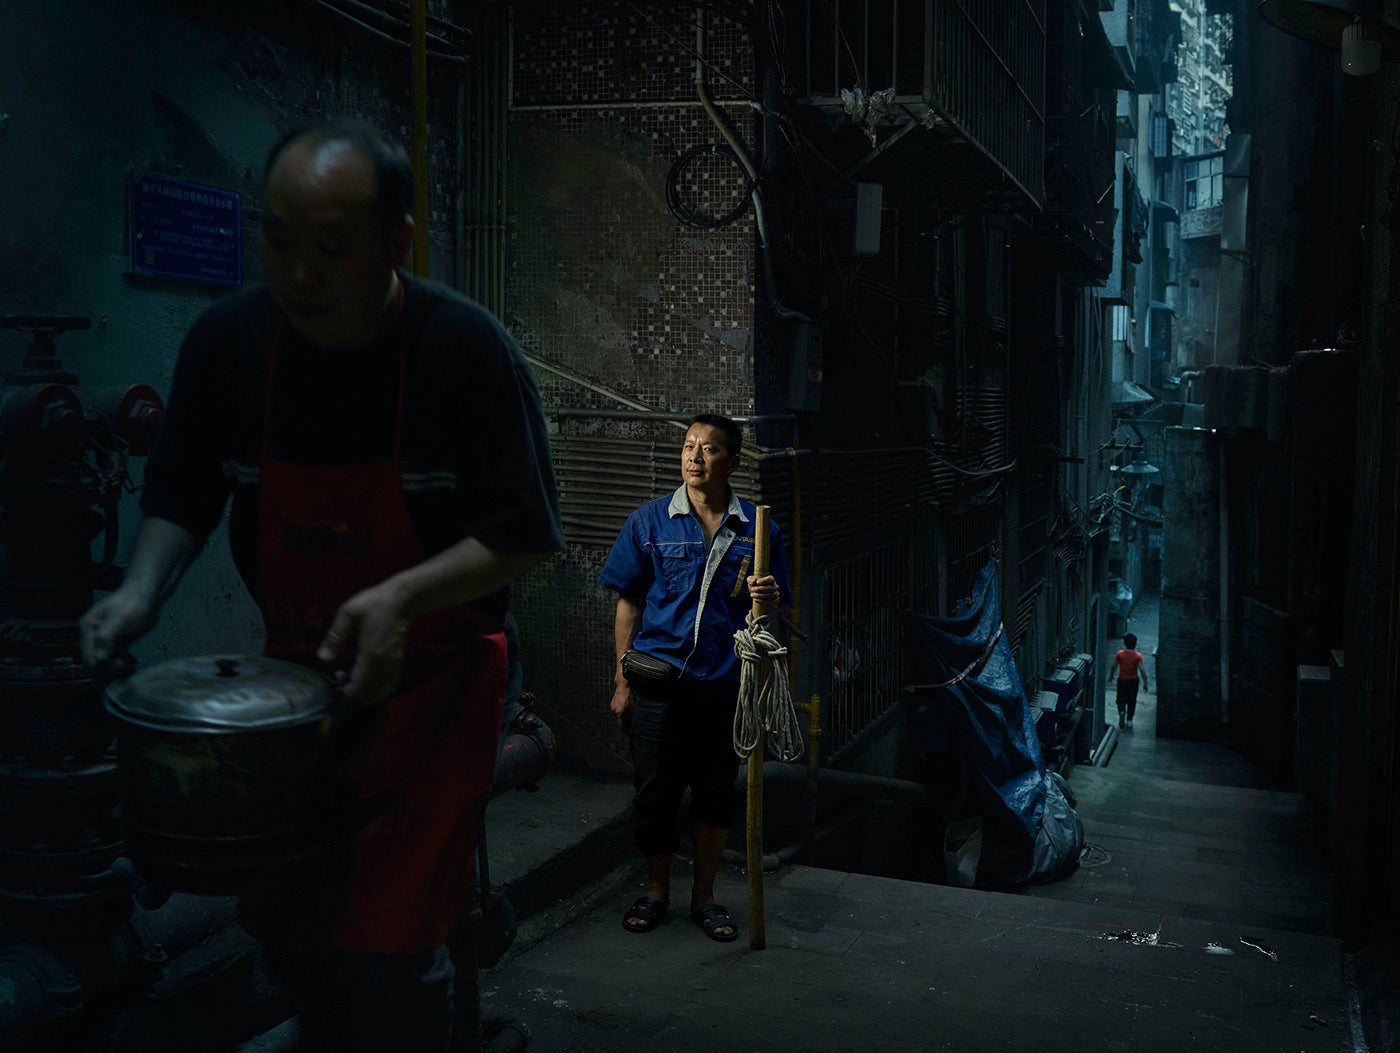 The Last Bang Bang Men of Chongqing by Ken Hermann